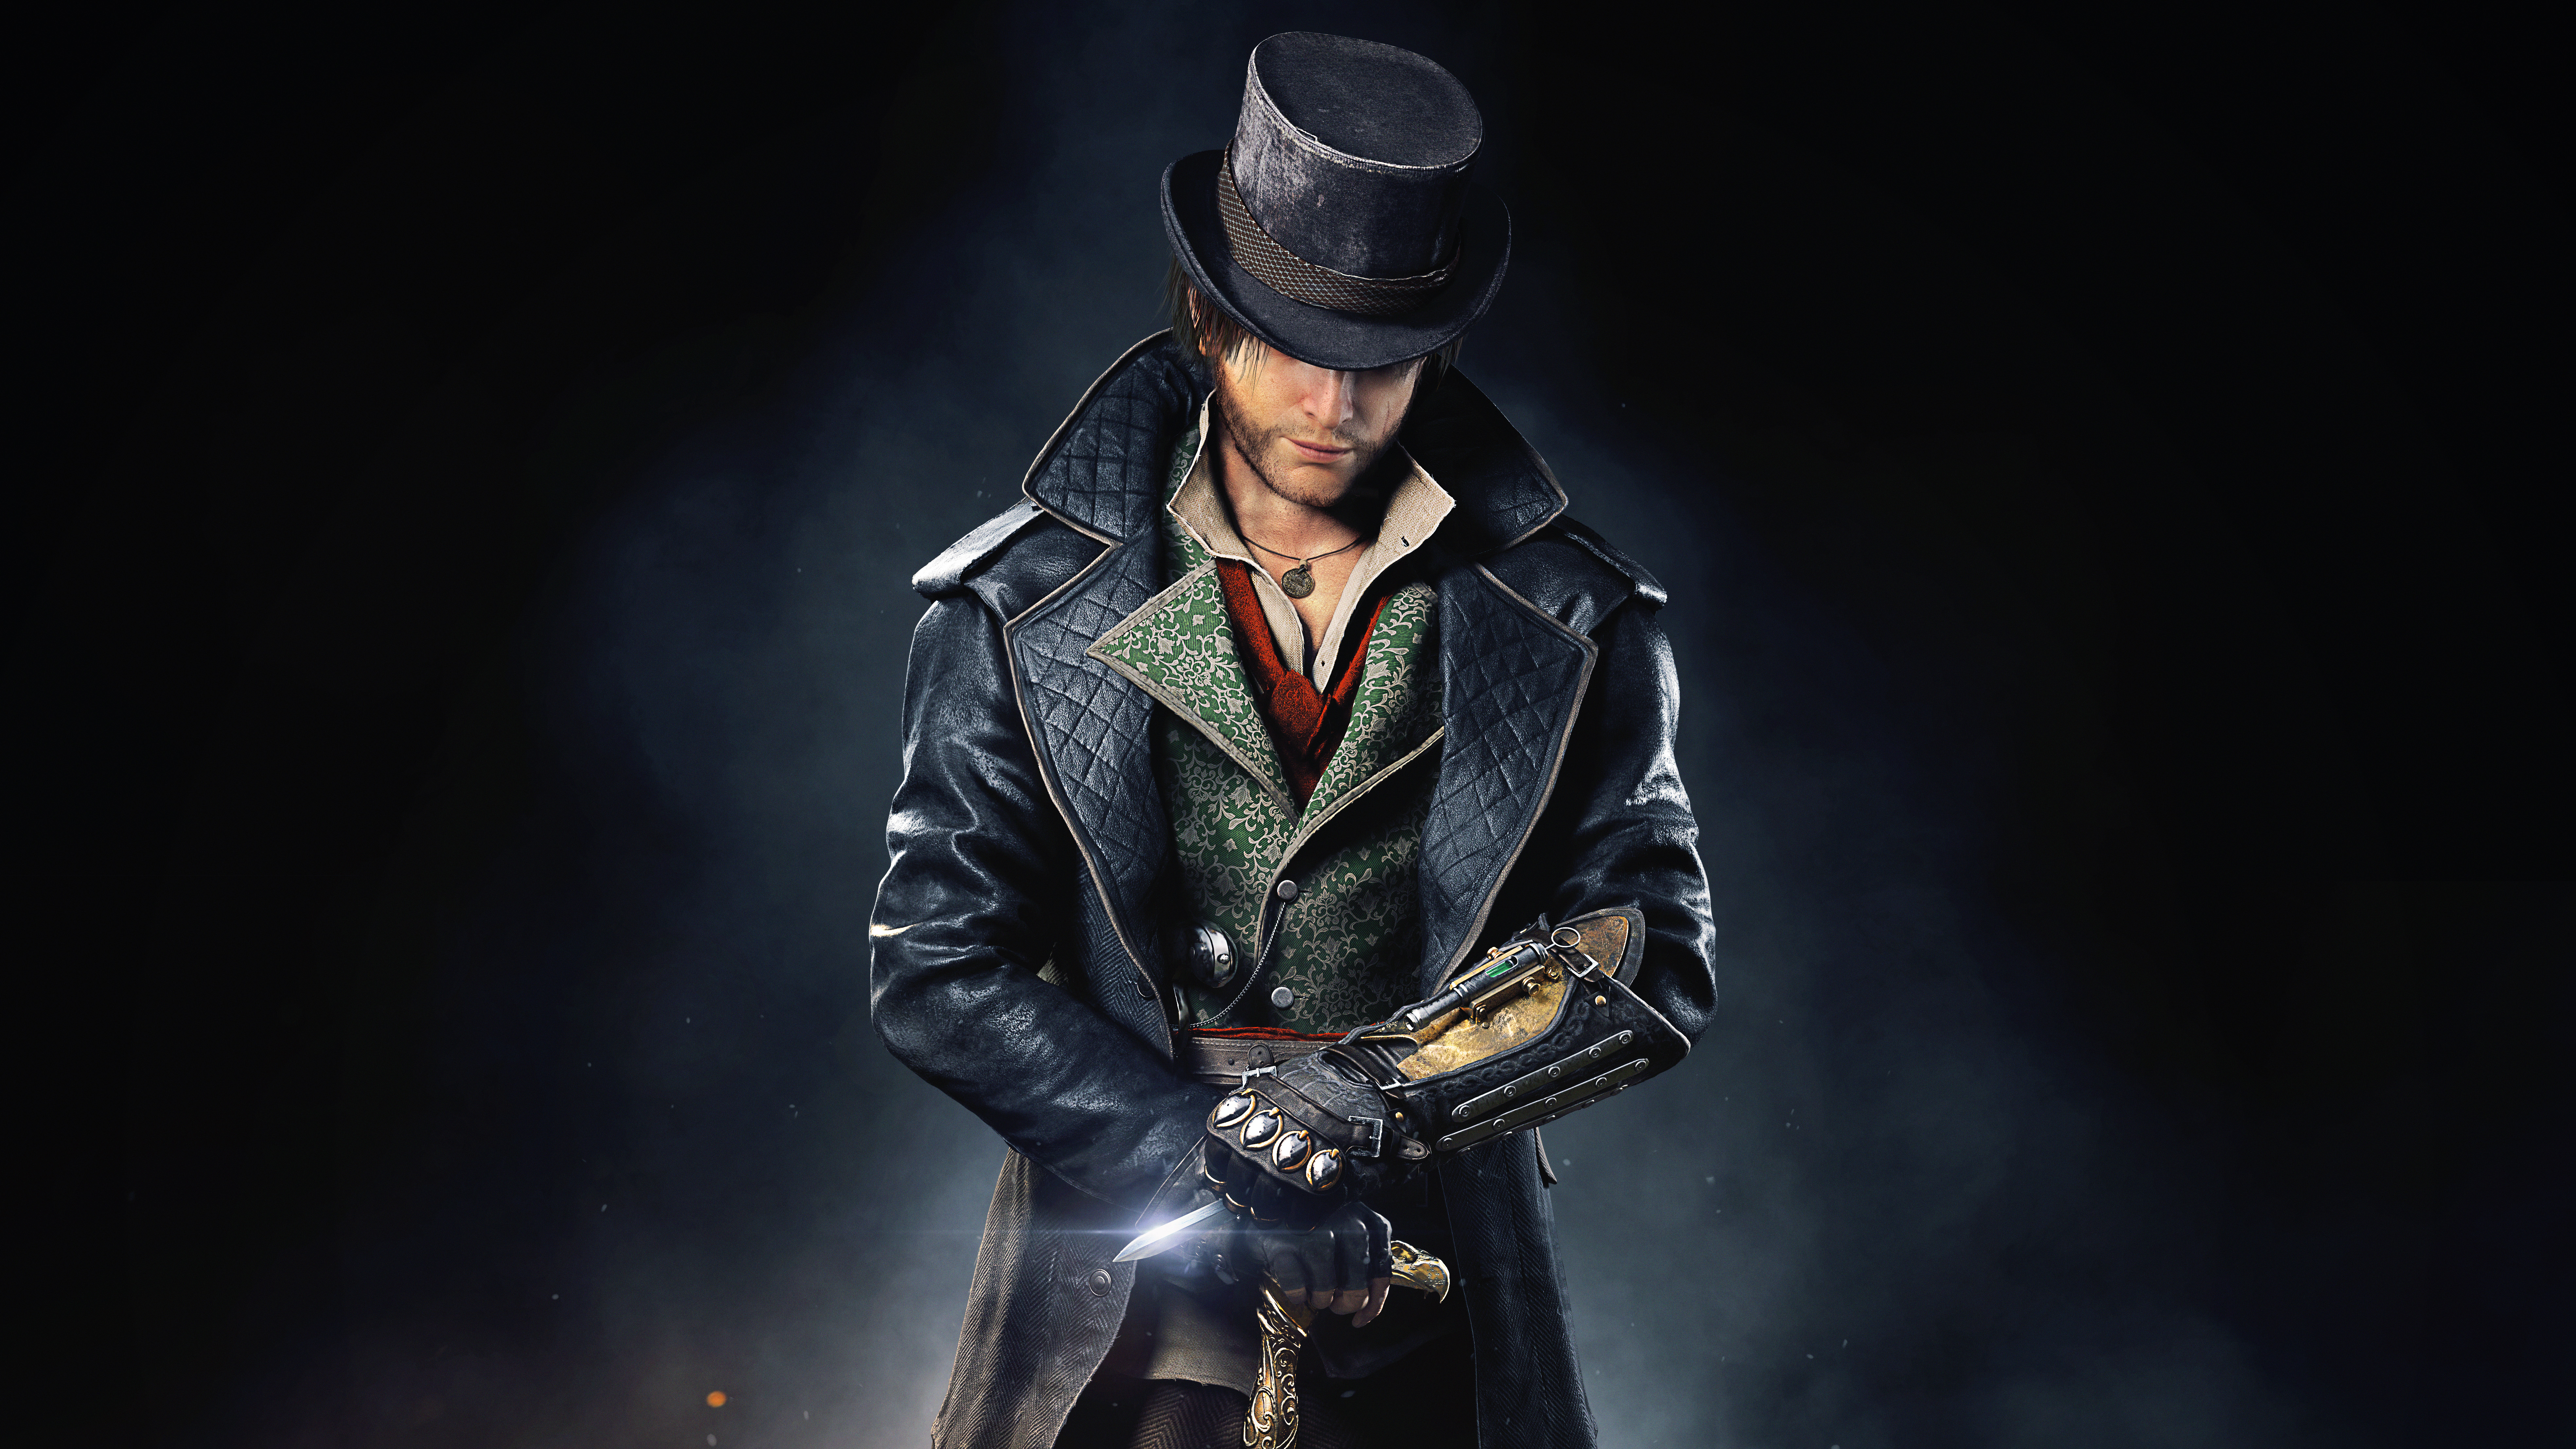 119 Assassins Creed Syndicate HD Wallpapers Background Images 7875x4430